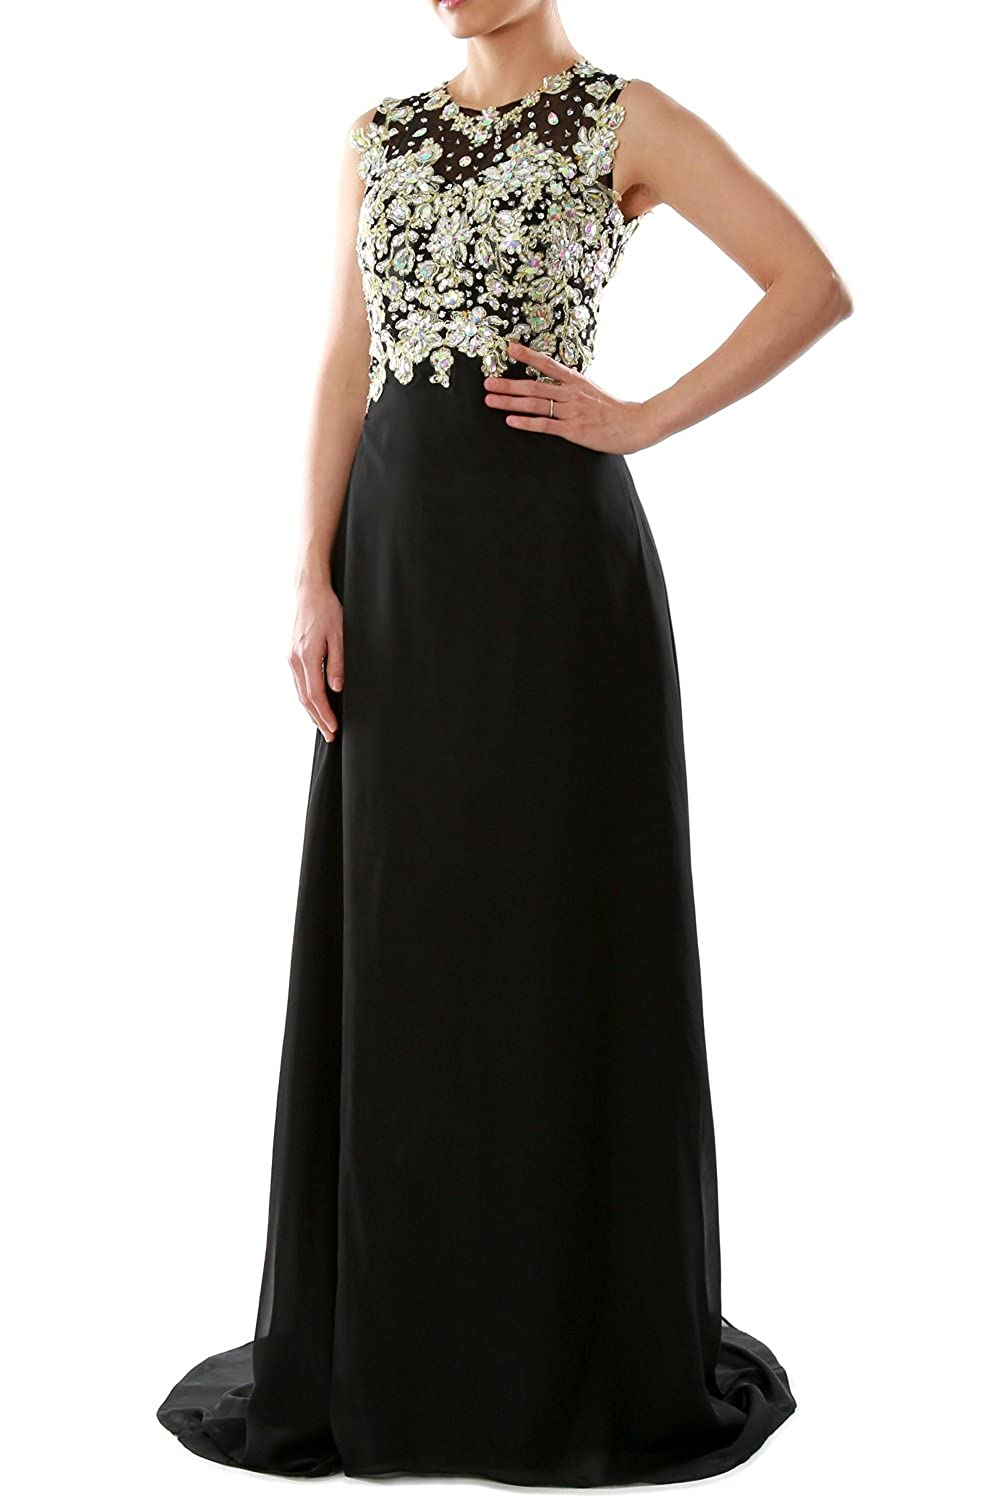 MACloth Women O Neck Gold Lace Chiffon Long Prom Dress Formal Party Evening Gown